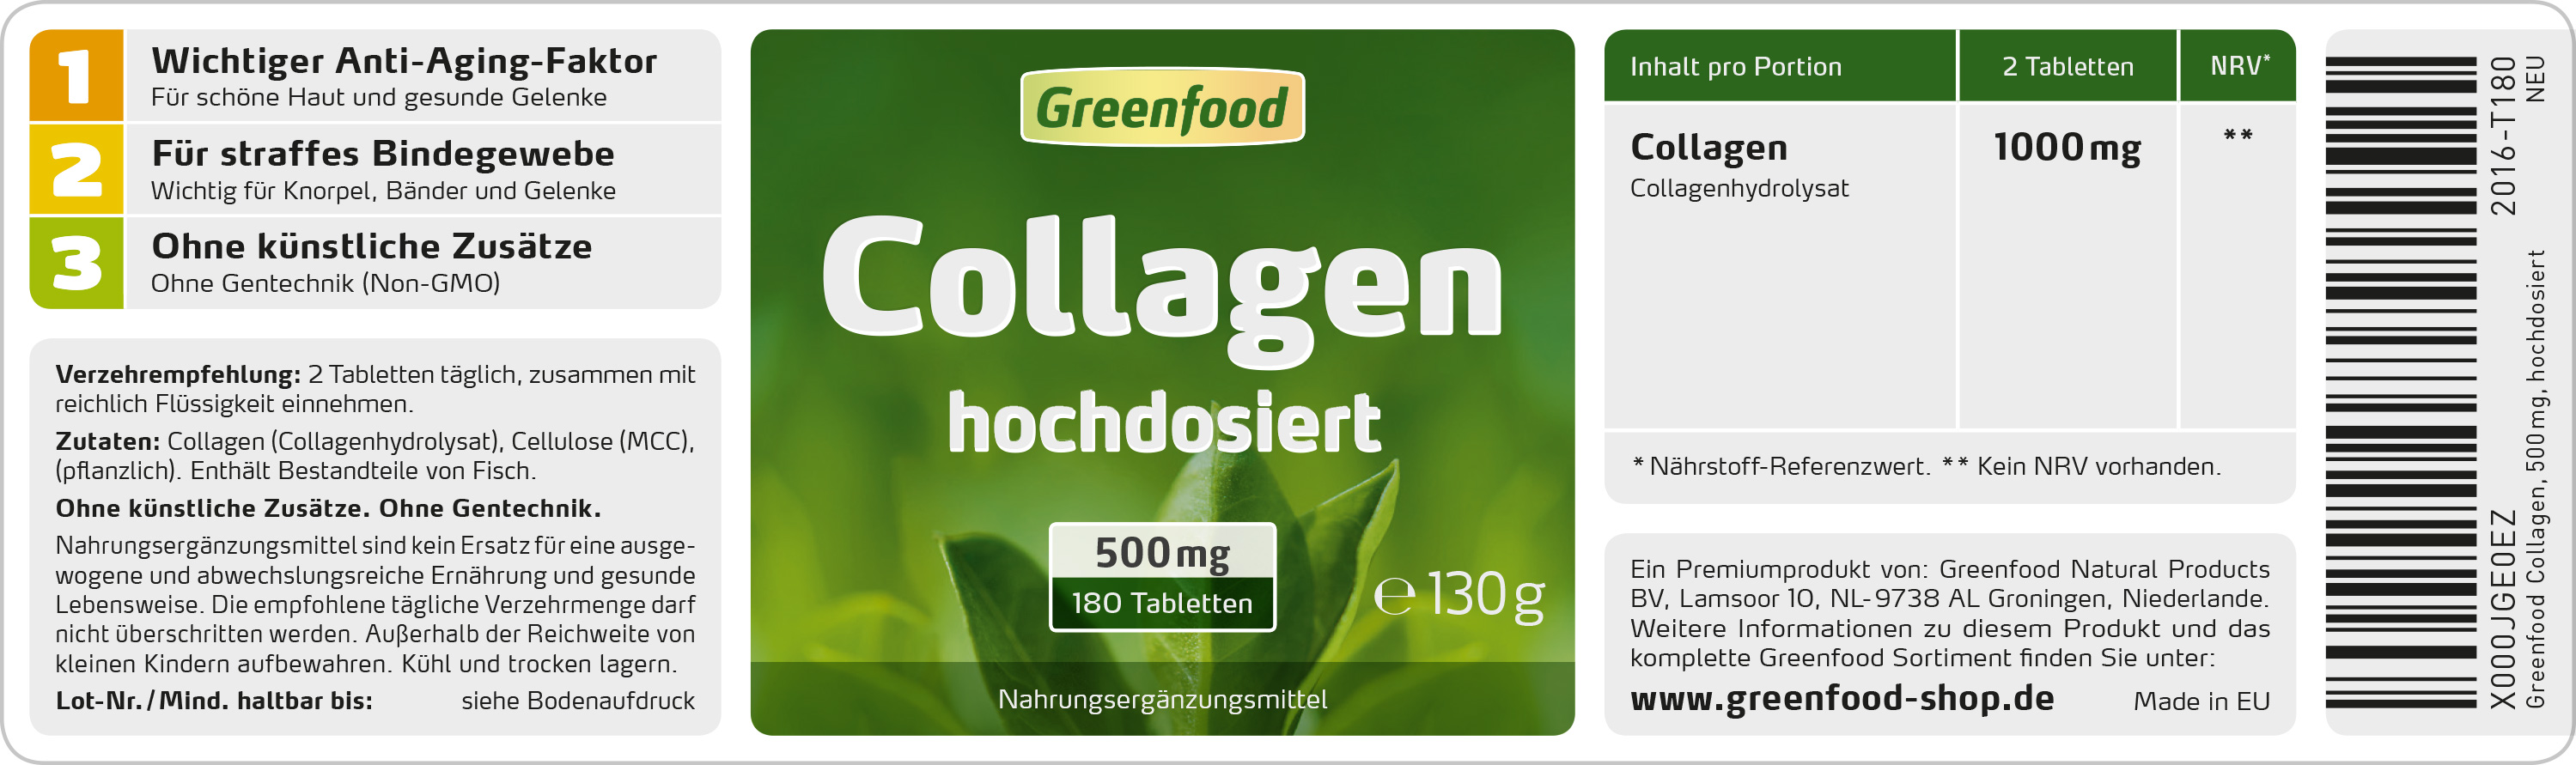 greenfood collagen 500mg 180 tabletten. Black Bedroom Furniture Sets. Home Design Ideas